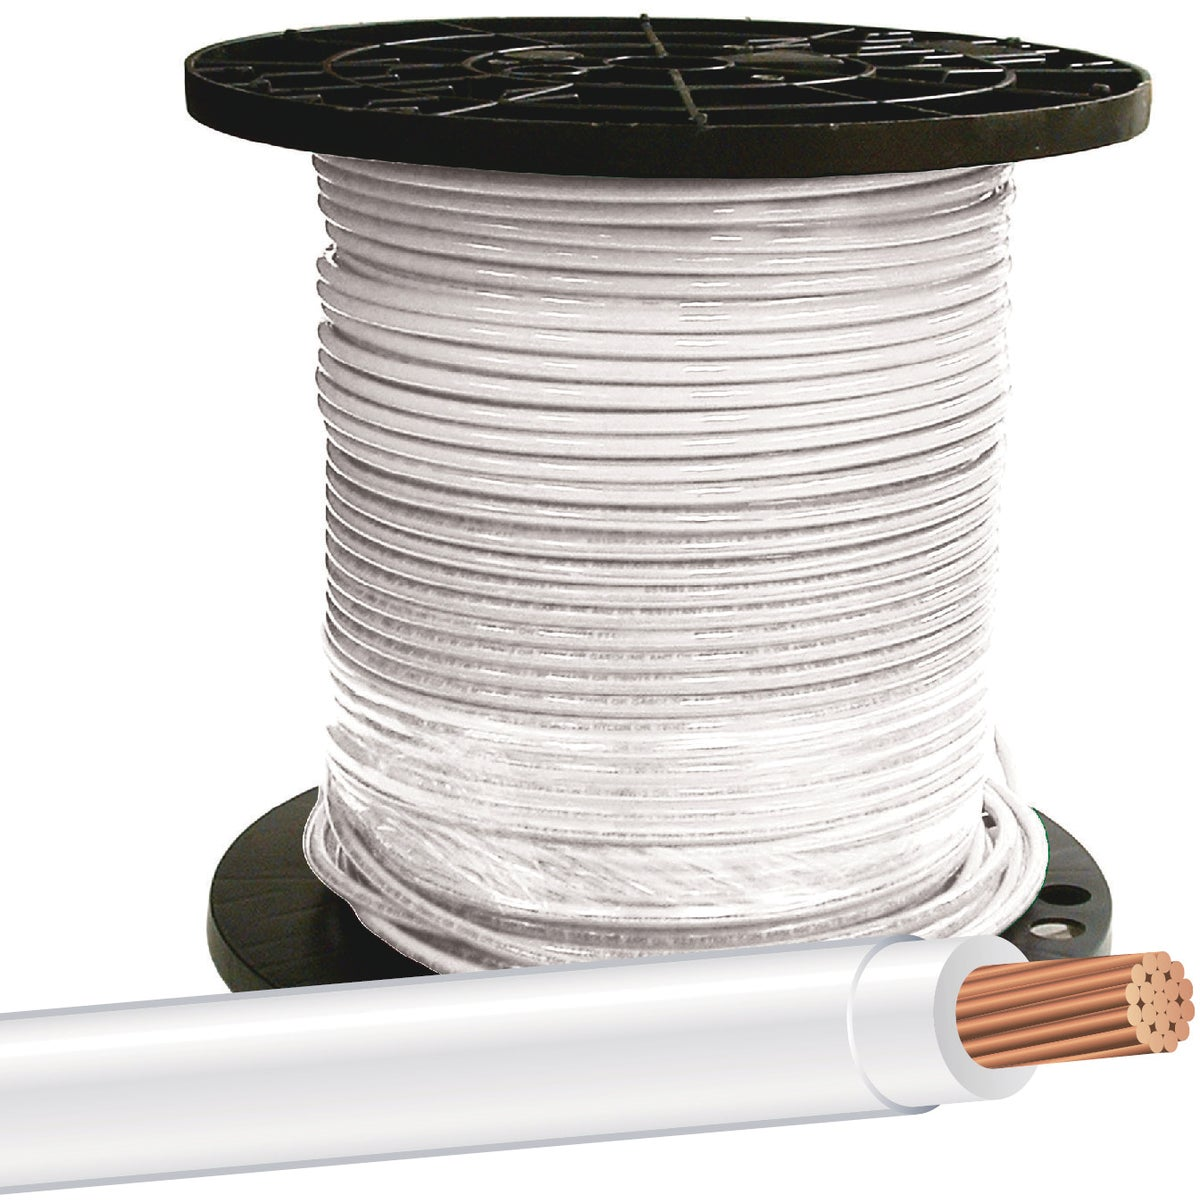 500' 8STR WHT THHN WIRE - 20489112 by Southwire Company